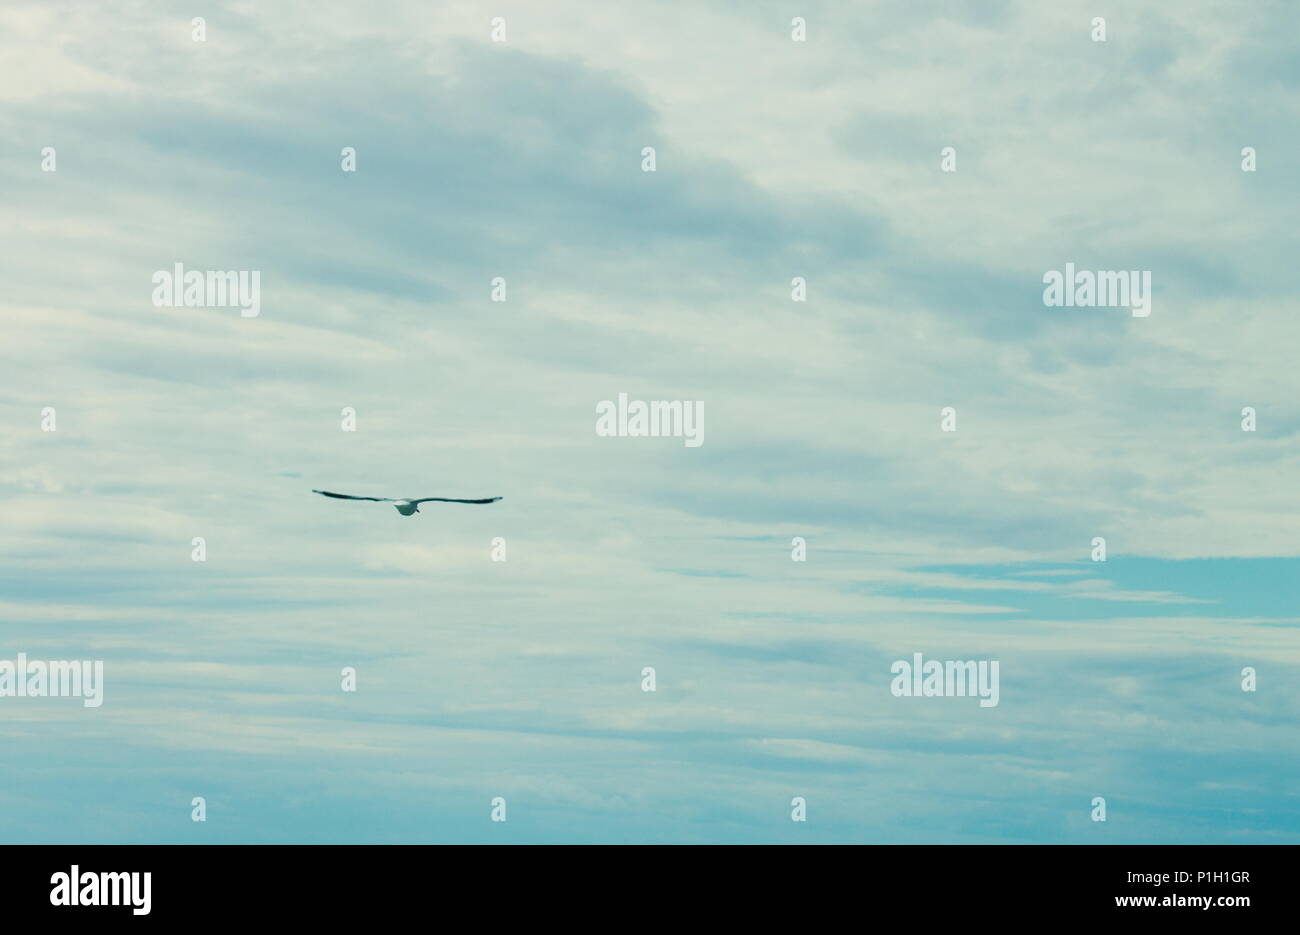 landscape image of A seagull soaring free in the air against a blue cloudy sky with copy space - Stock Image